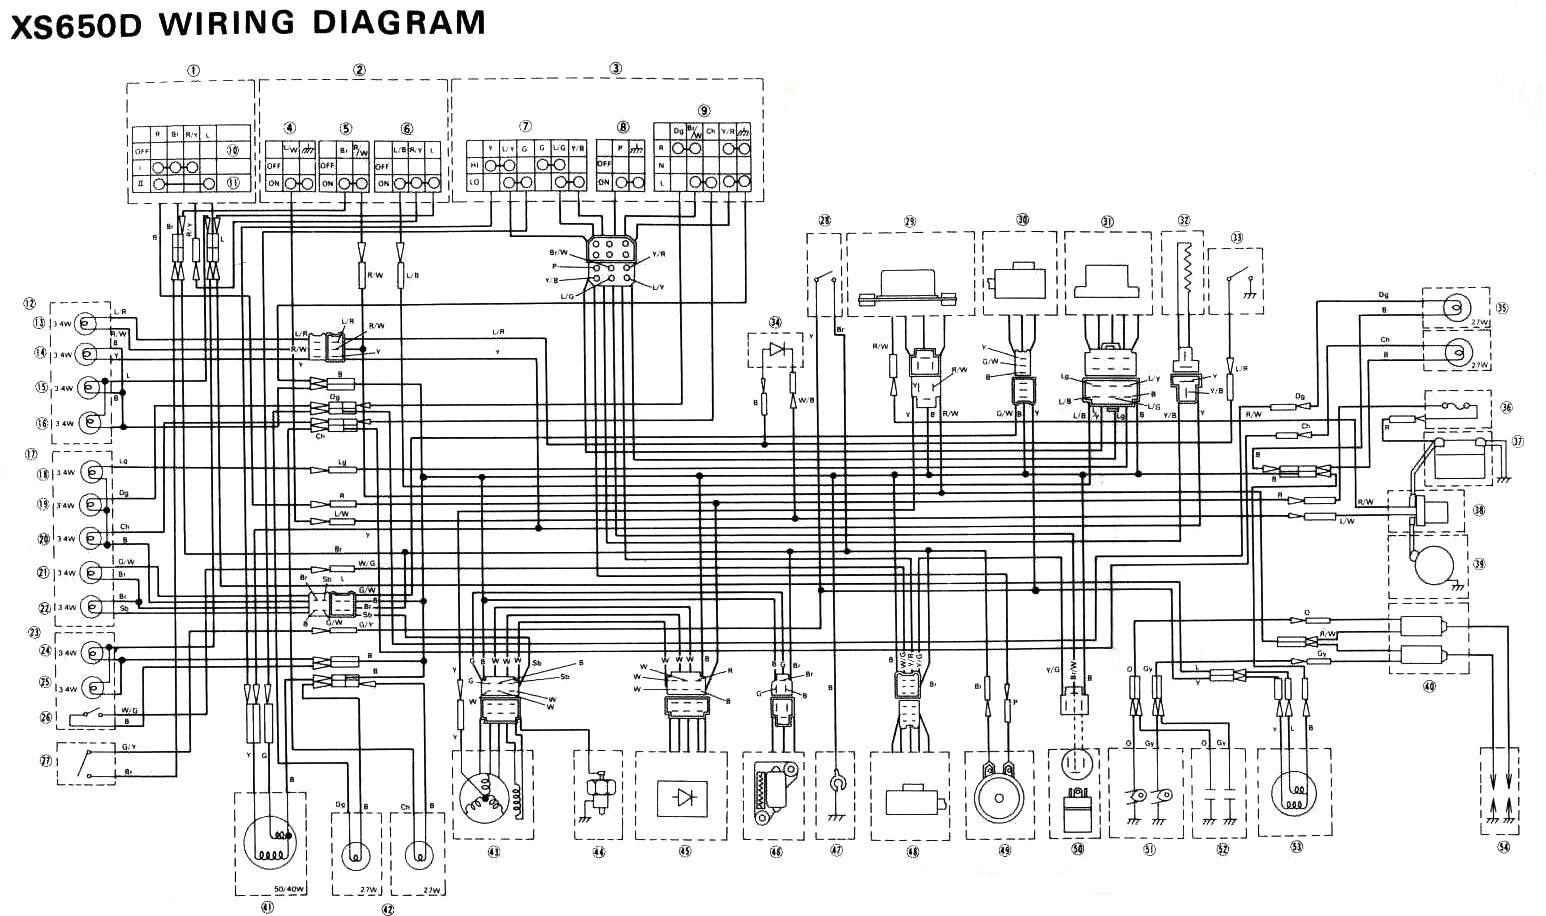 xl 250 wiring diagram wiring diagramhonda xl250 wiring diagram diagram chartxl250 wiring diagram xl wiring diagram on ct wiring diagrams1977 xs650d jpg